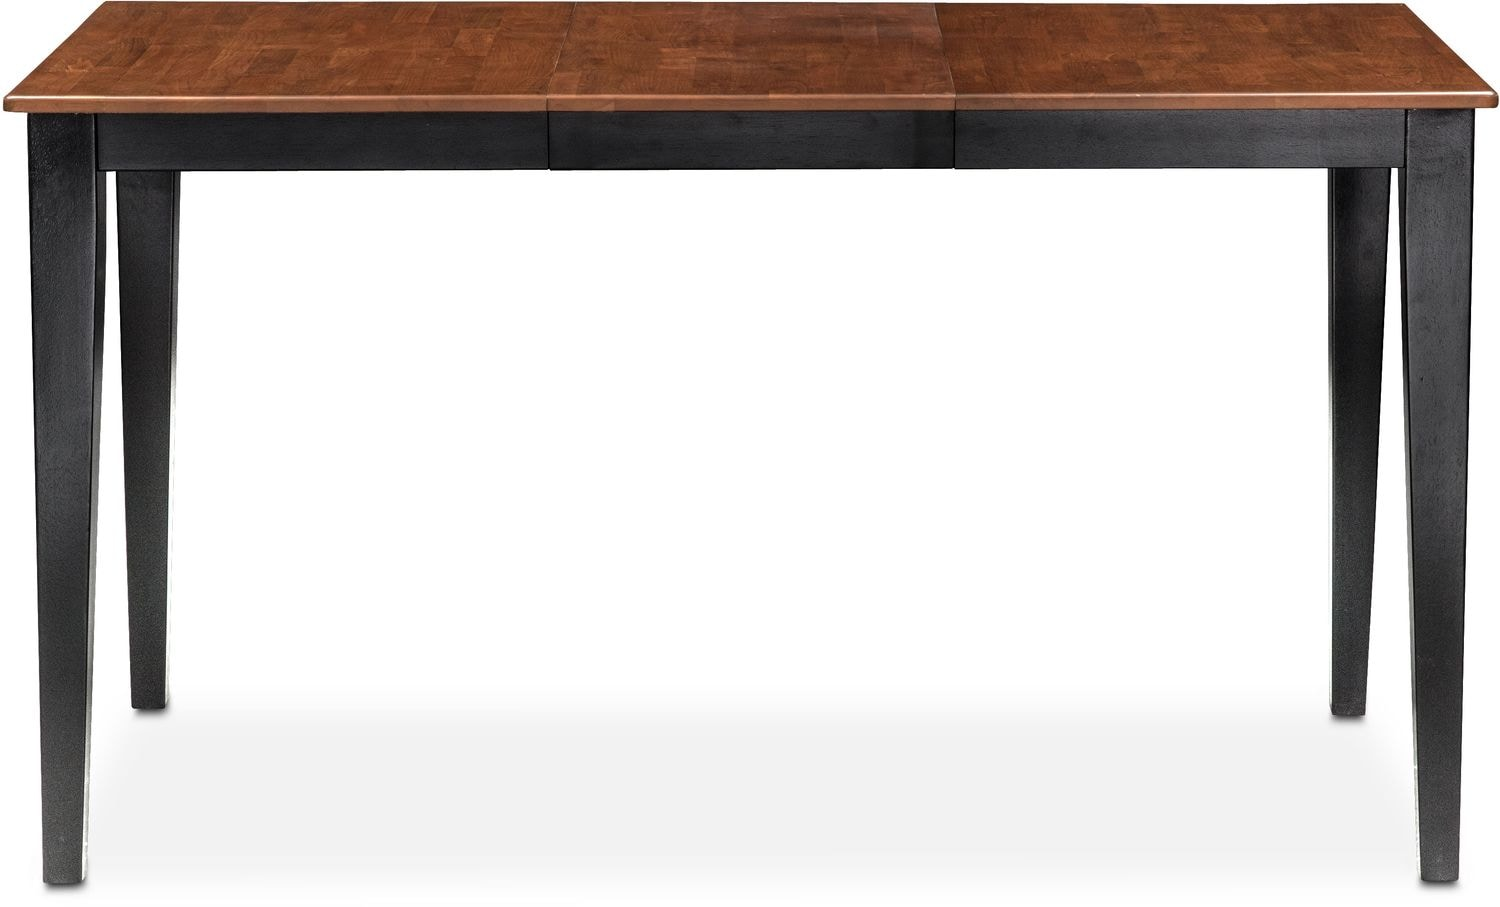 Counter Height Sofa Table 2018 Latest Counter Height Sofa